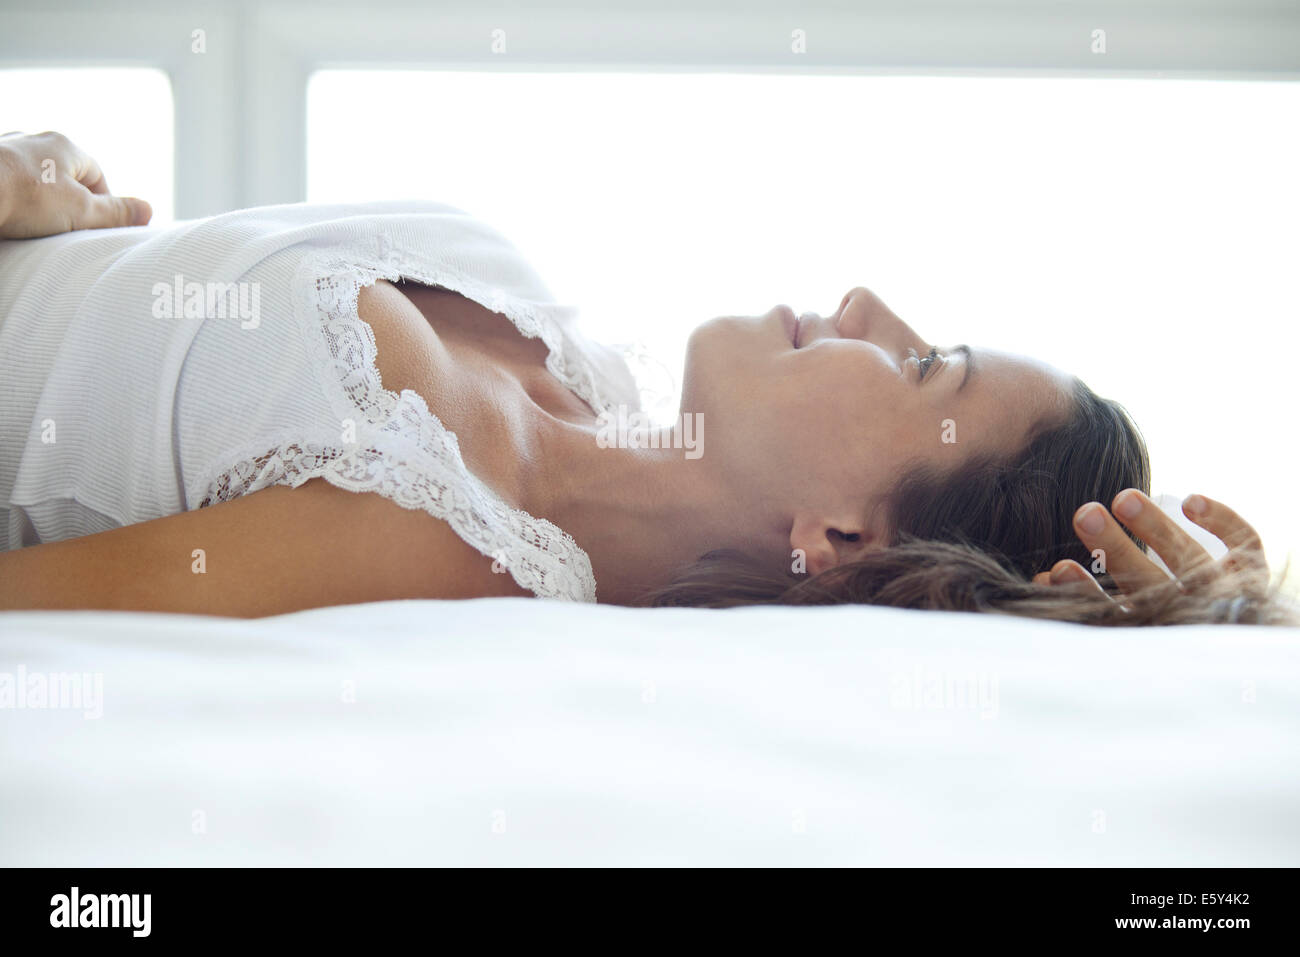 Home Comforts Stock Photos Amp Home Comforts Stock Images Alamy